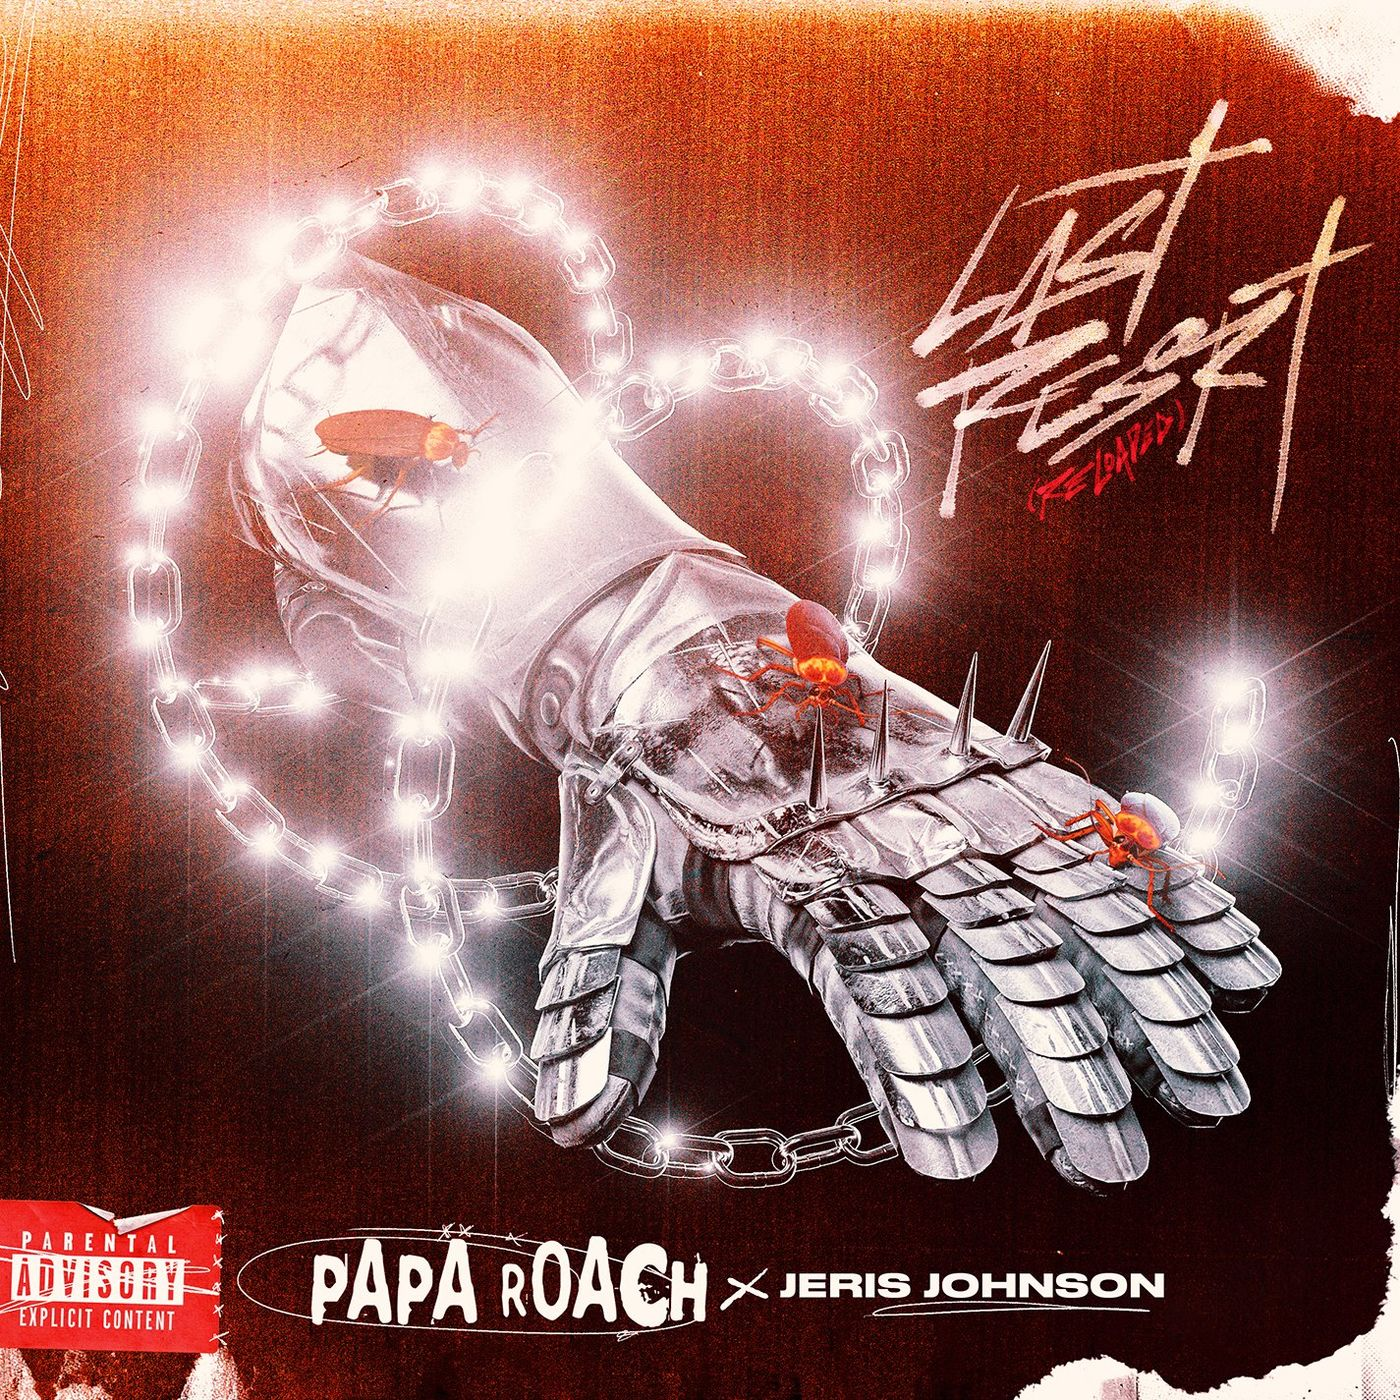 Papa Roach - Last Resort (Reloaded) [single] (2021)